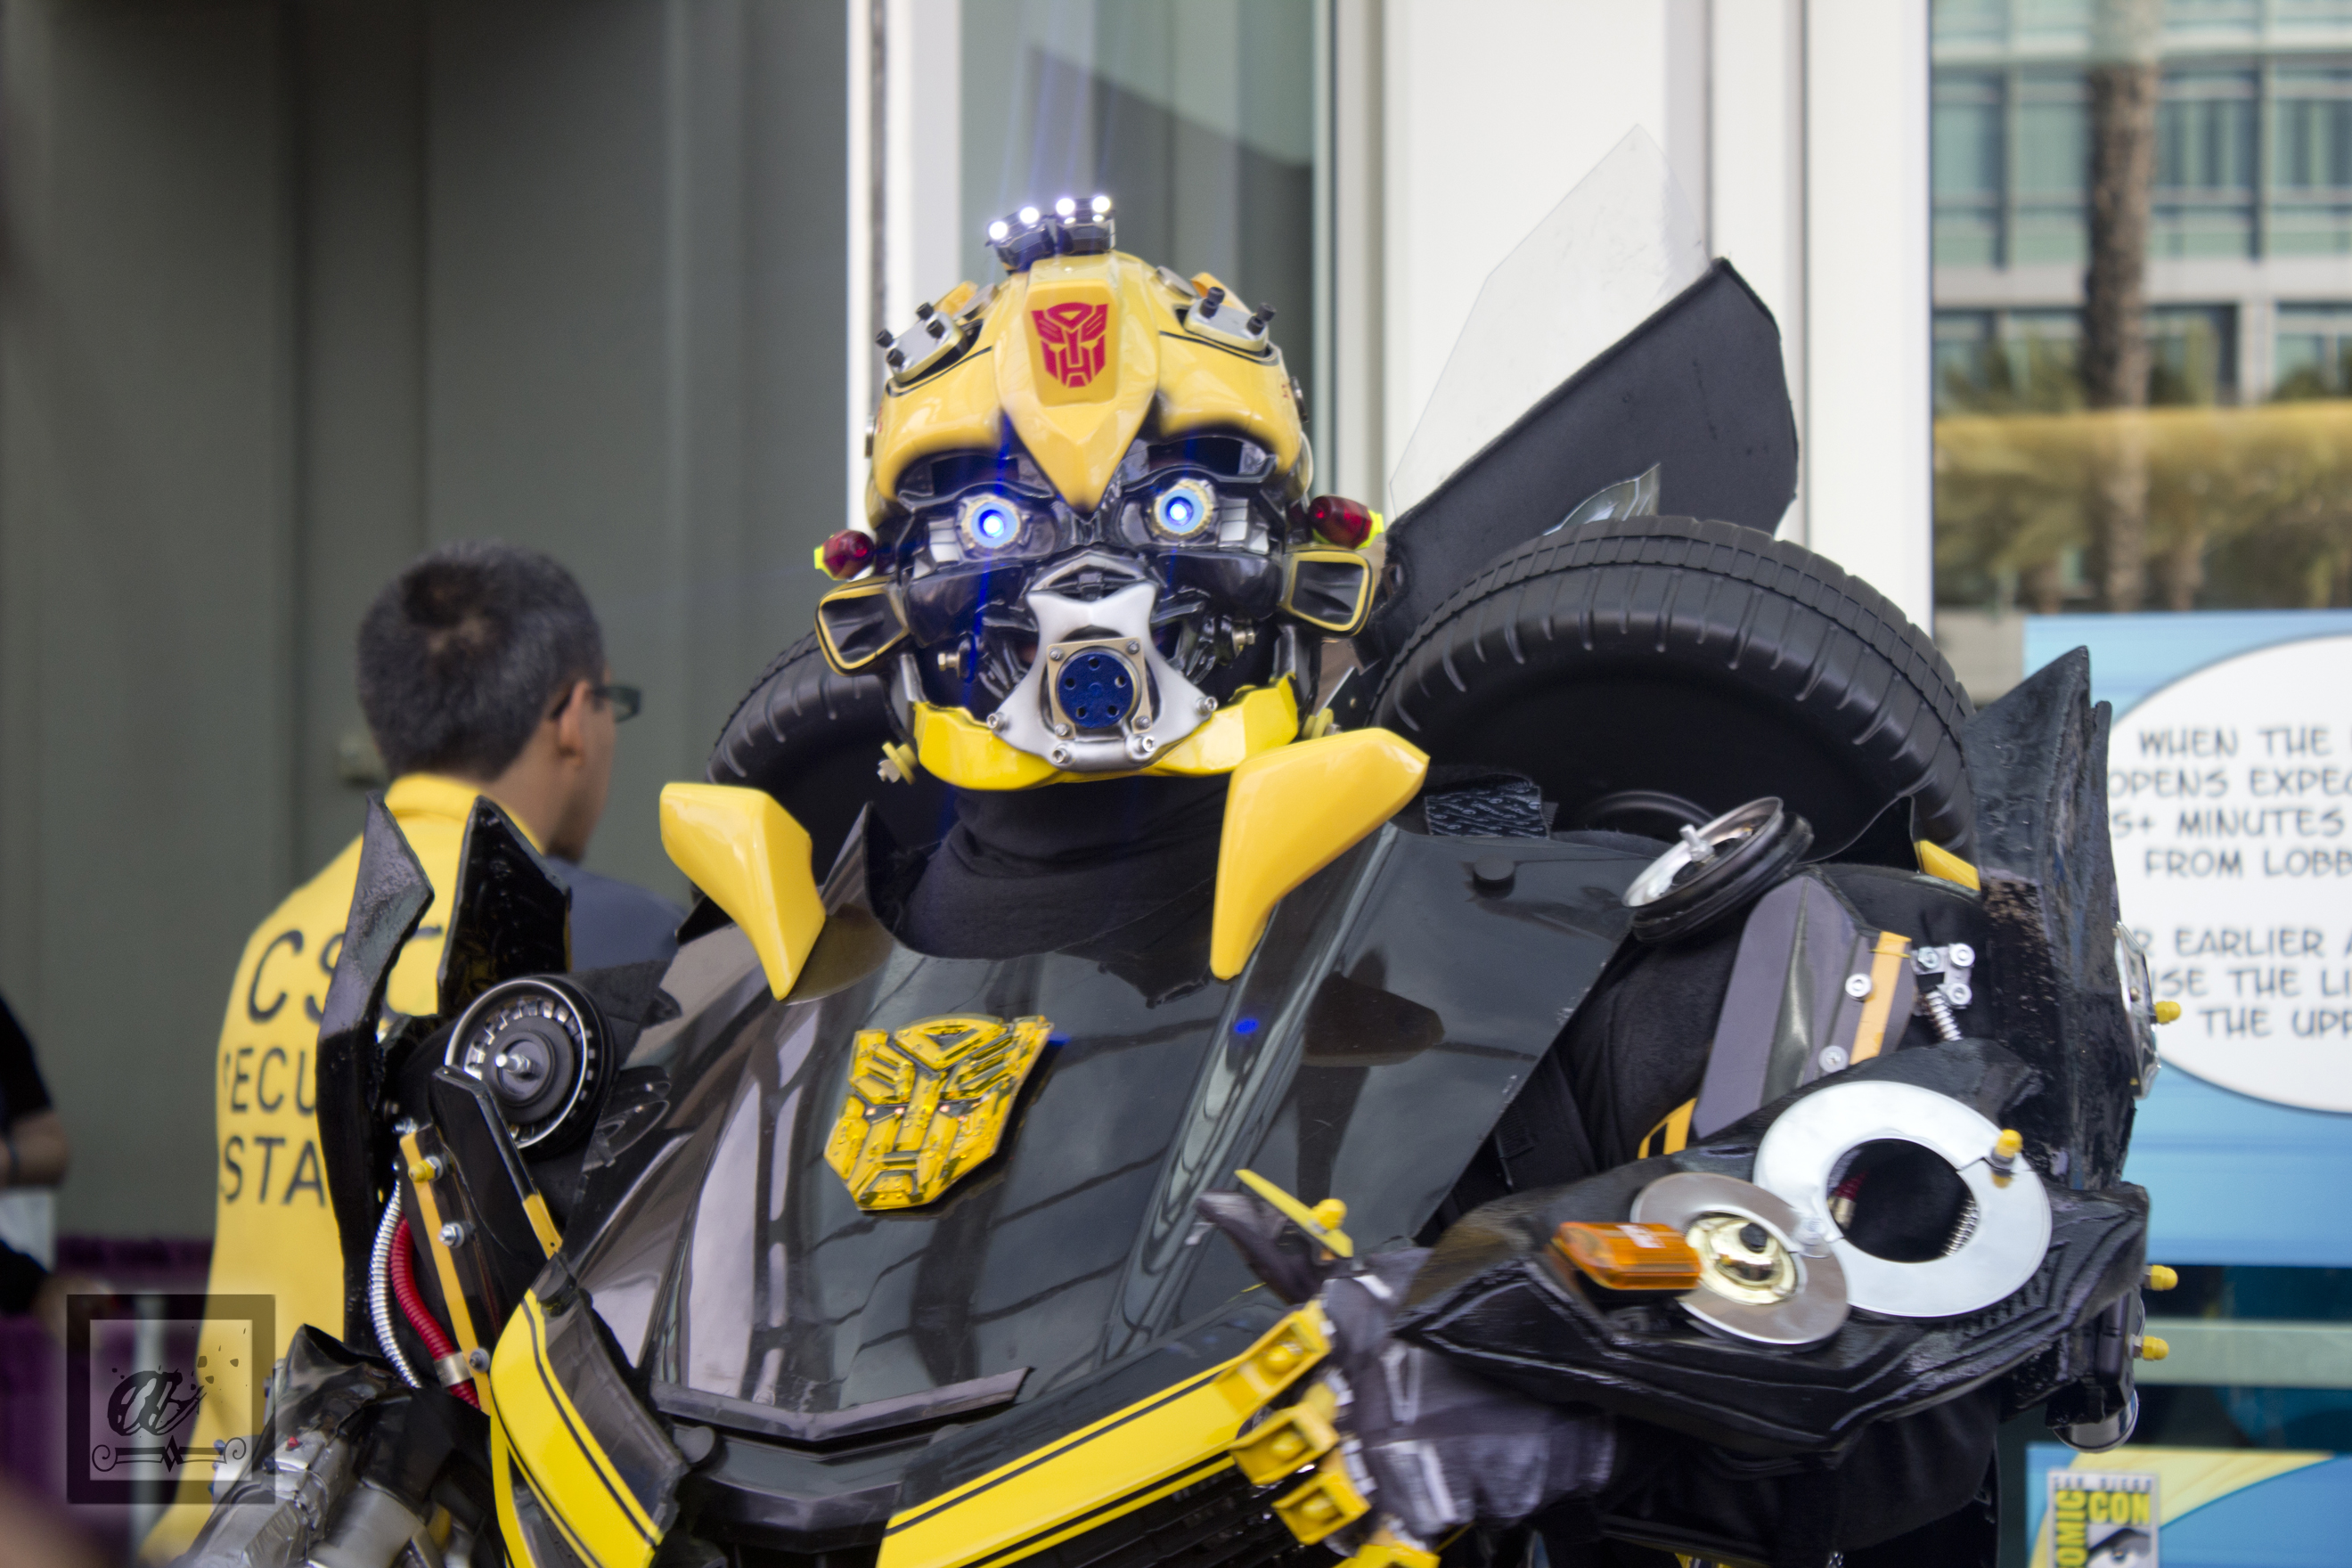 SDCC 2015 Bumblebee Cosplay